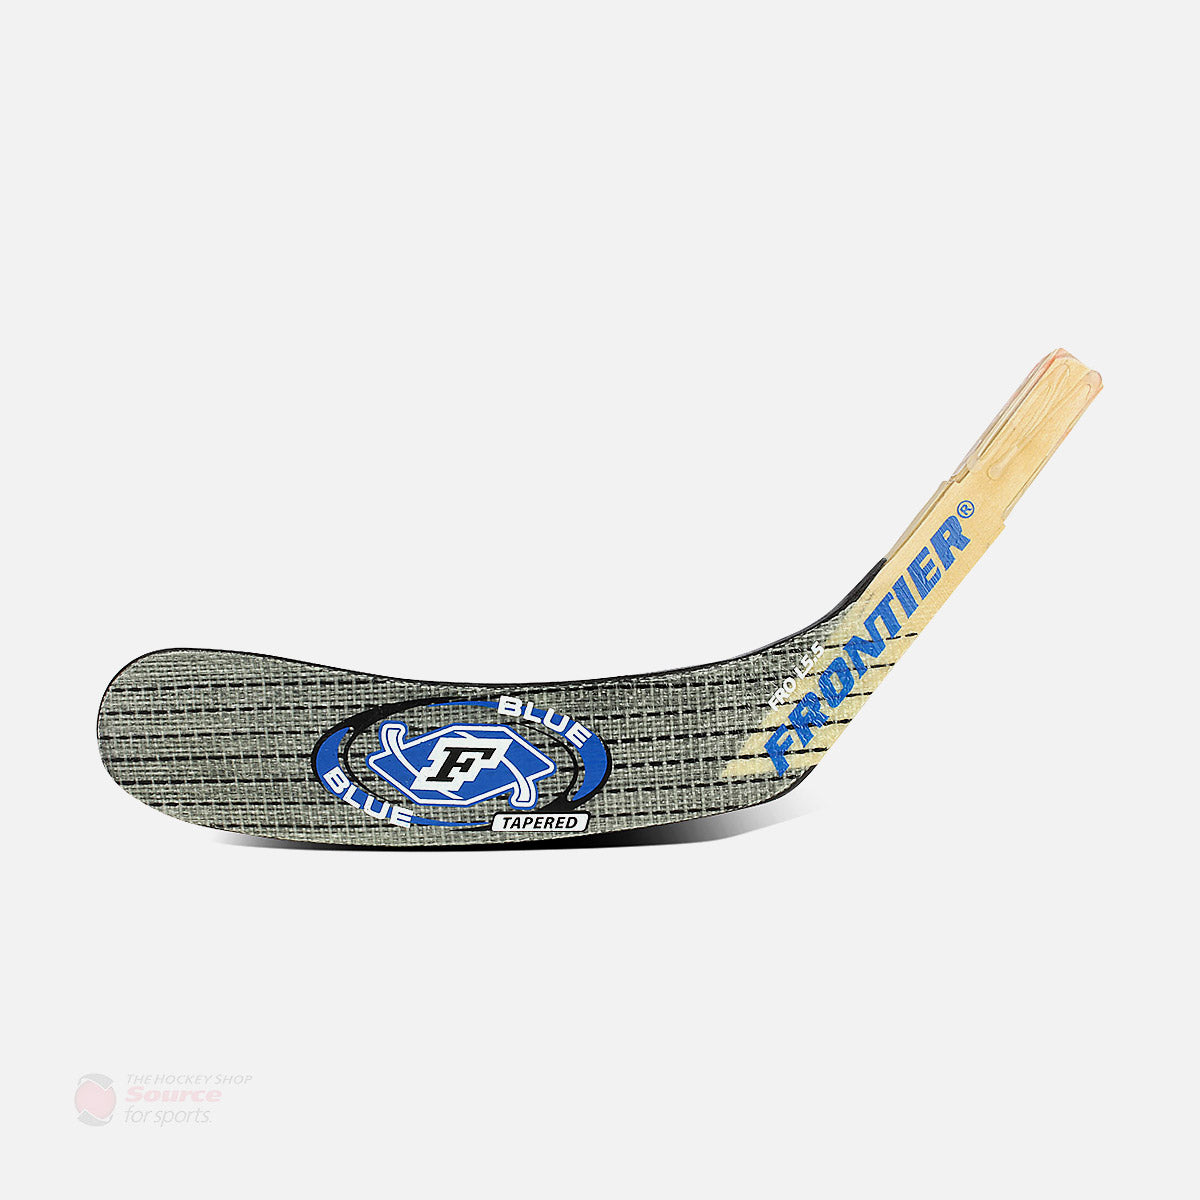 Frontier F-Blue ABS Tapered Senior Wood Hockey Blade